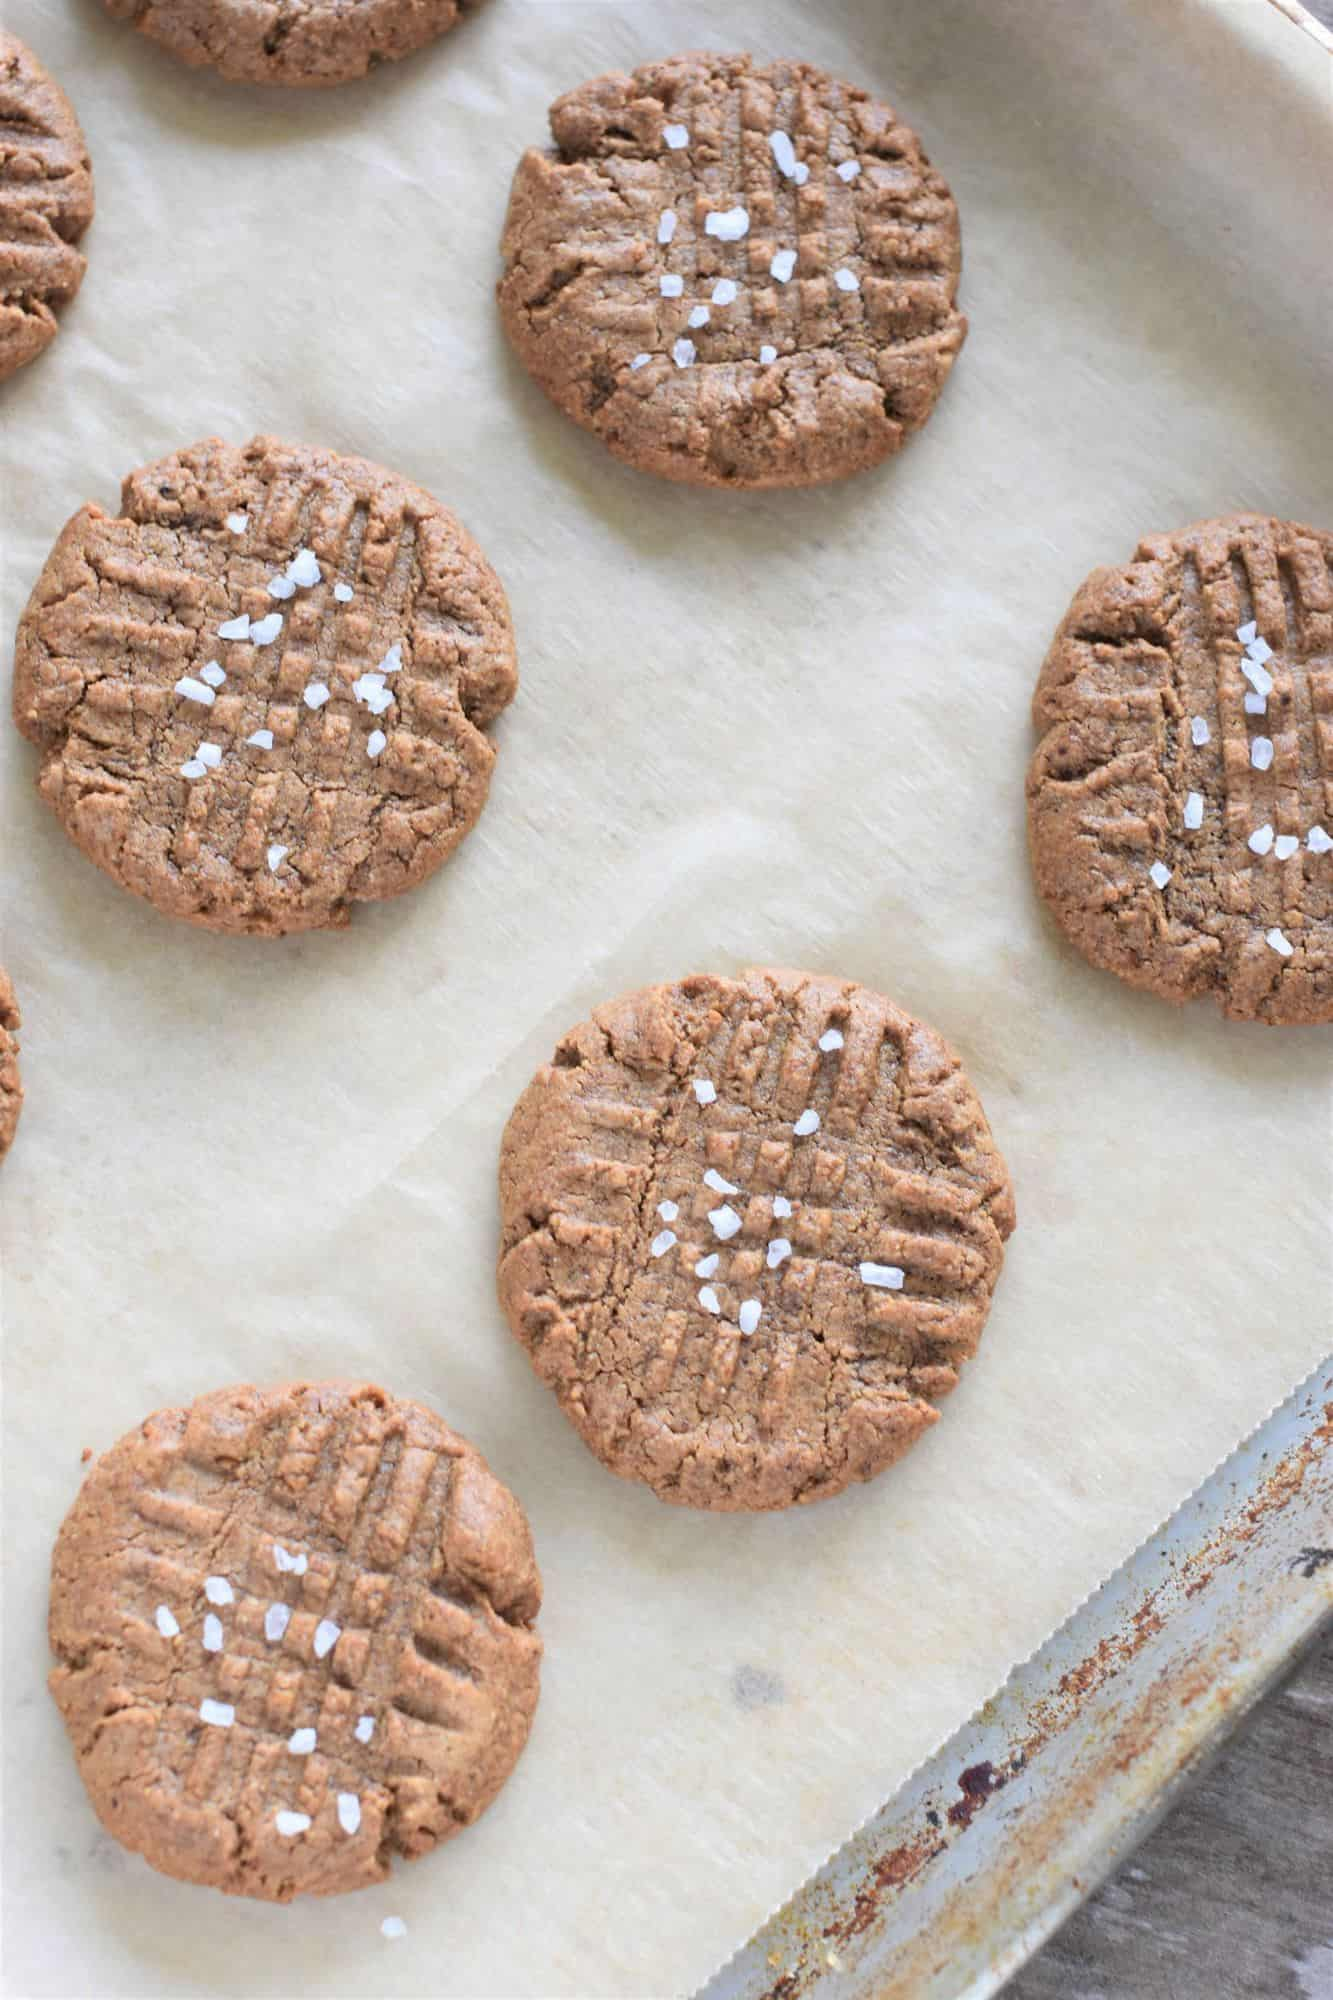 sea salt added to cookies on baking sheet after being baked